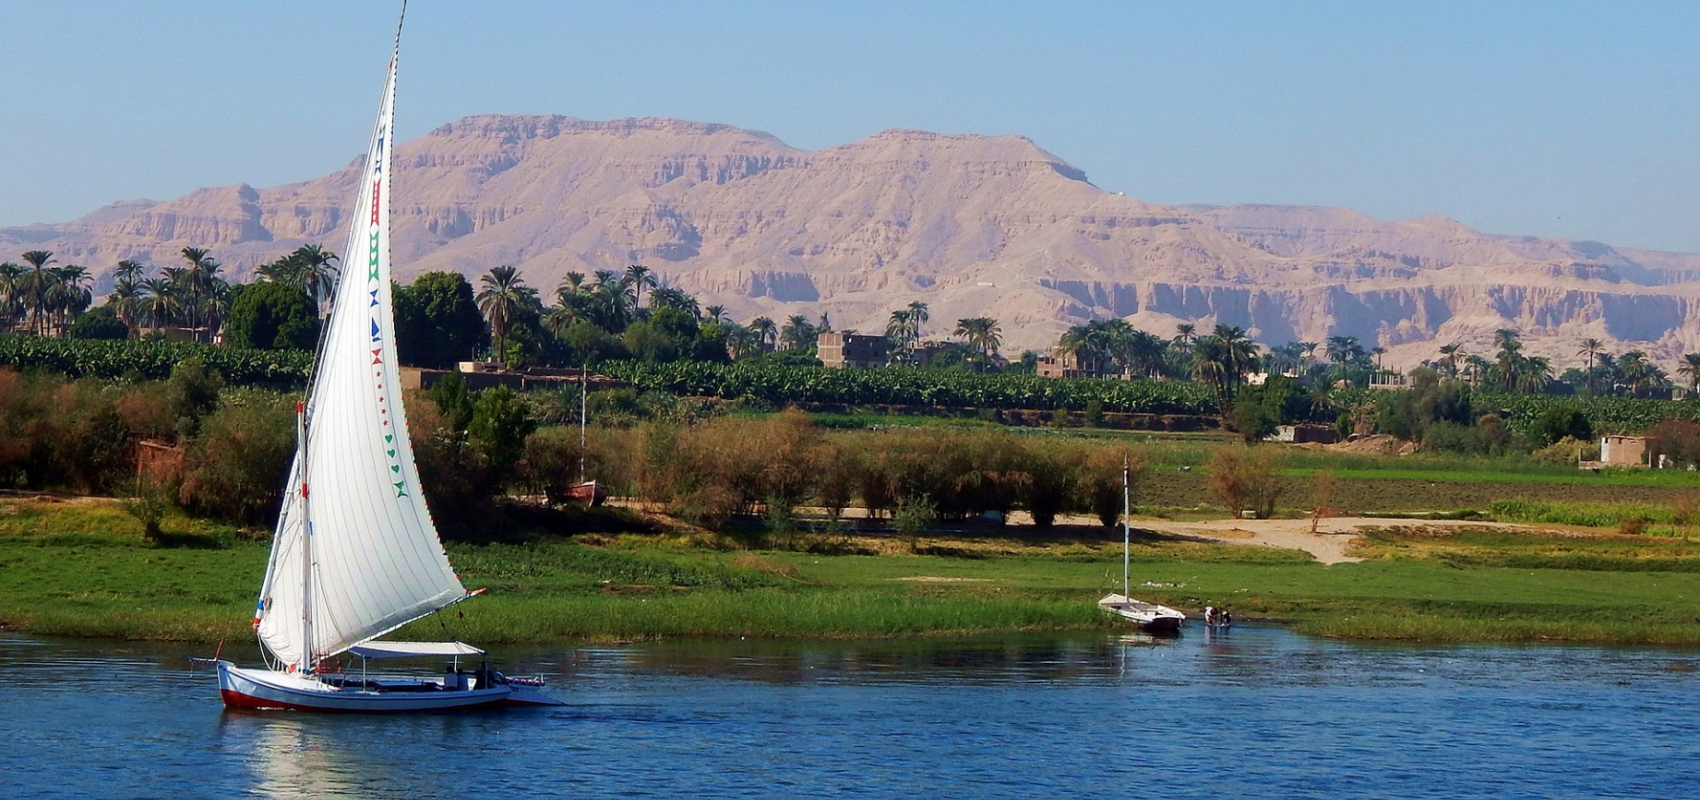 Sail boat on the Nile